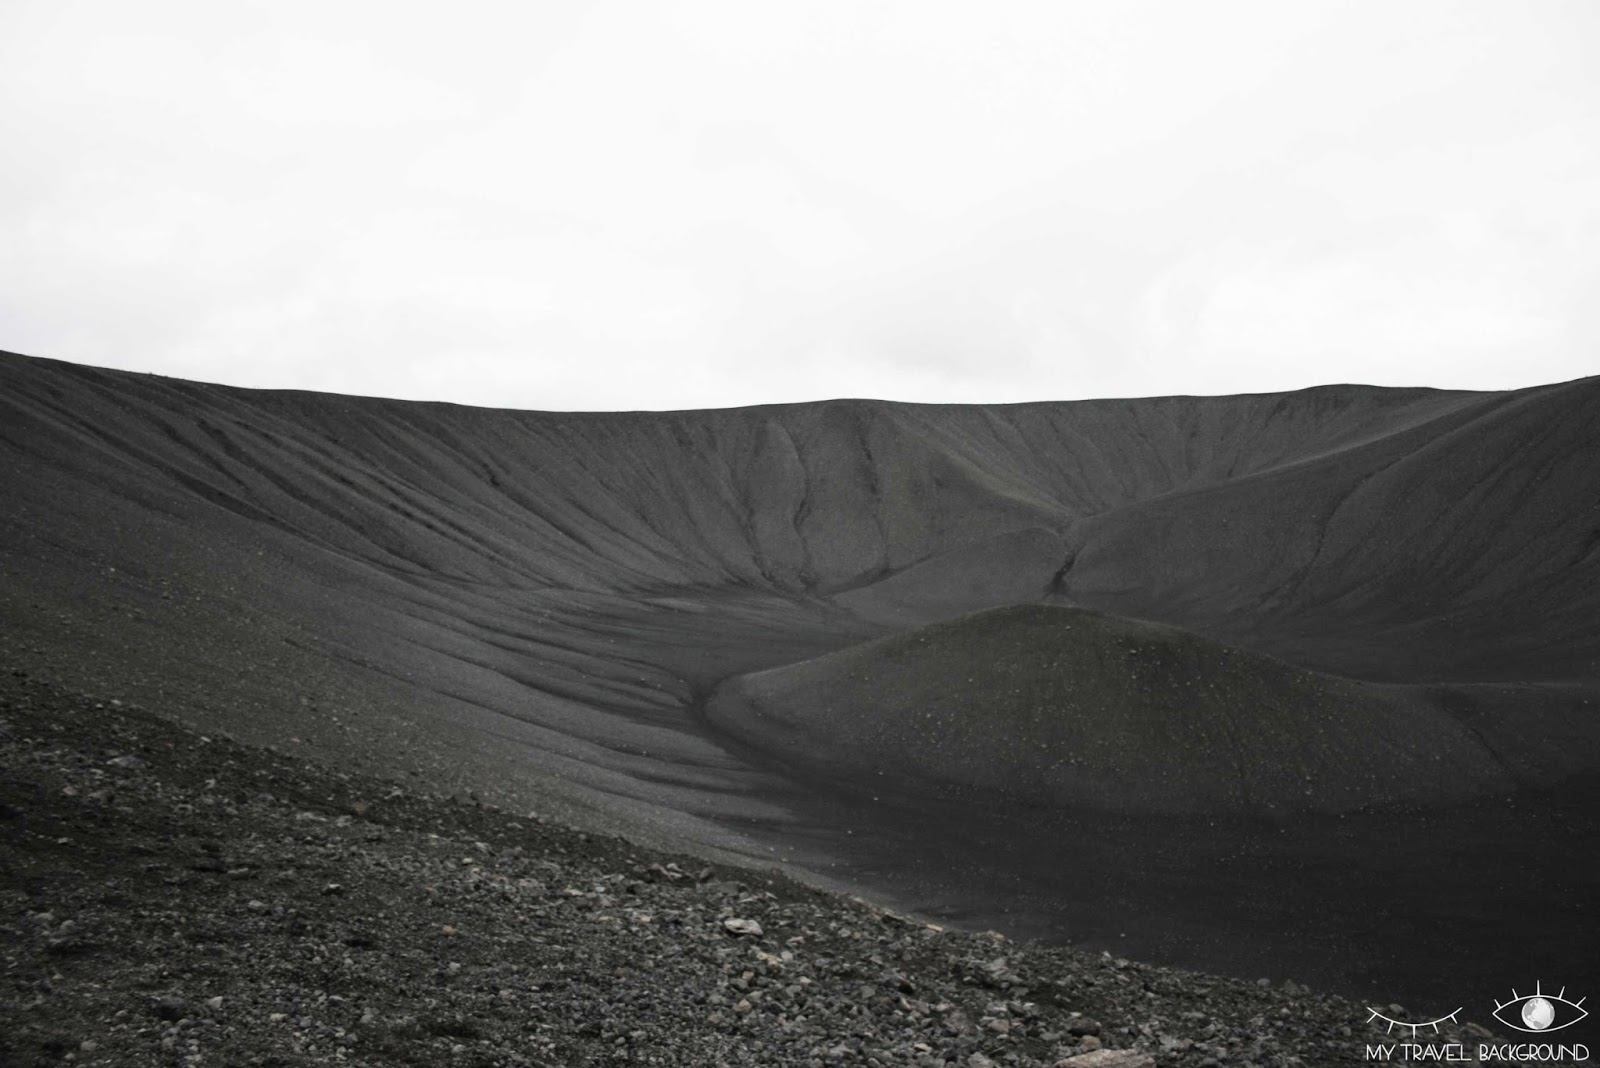 My Travel Background : 2 jours autour du lac Myvatn en Islande - Cratère Hverfjall